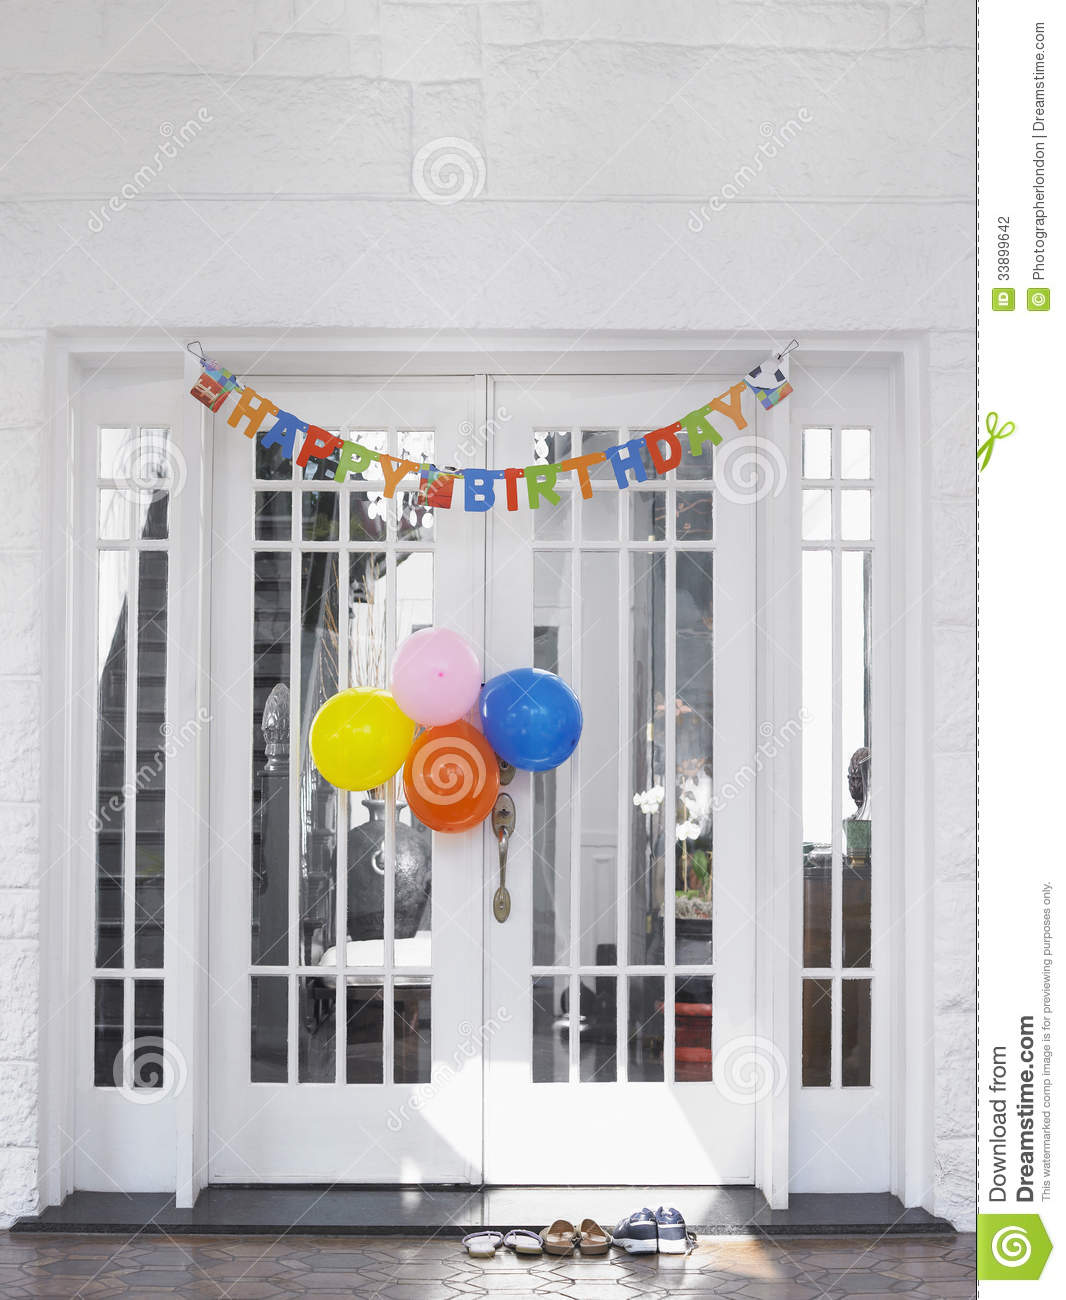 Birthday Decorations At House Stock Photo Image Of Color Footwear